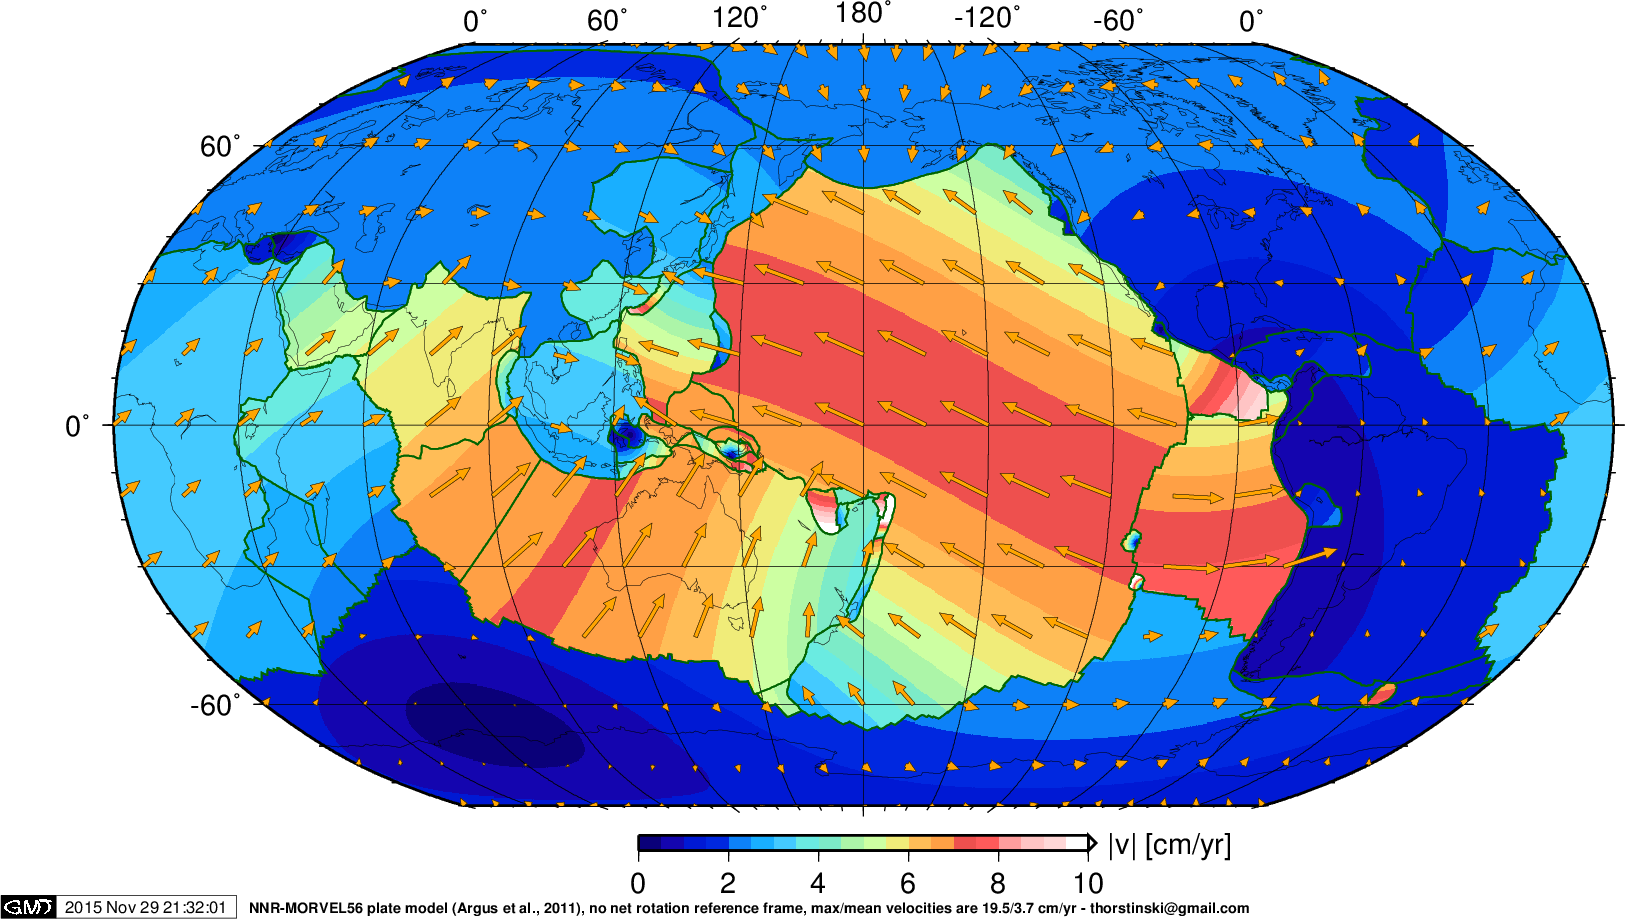 Thorsten Becker - Chair in Geophysics: Global plate tectonic ...